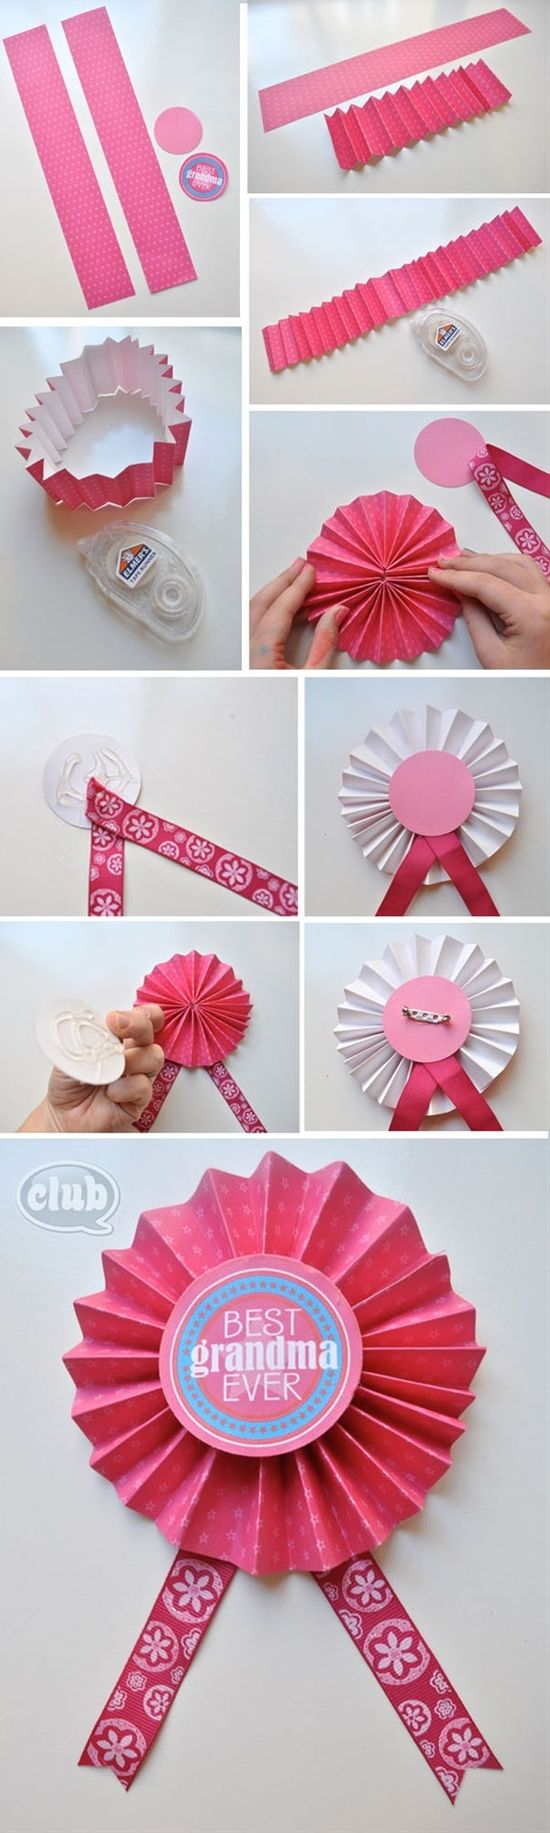 166 Best Mothers Day Ideas Images On Pinterest Mother S Day